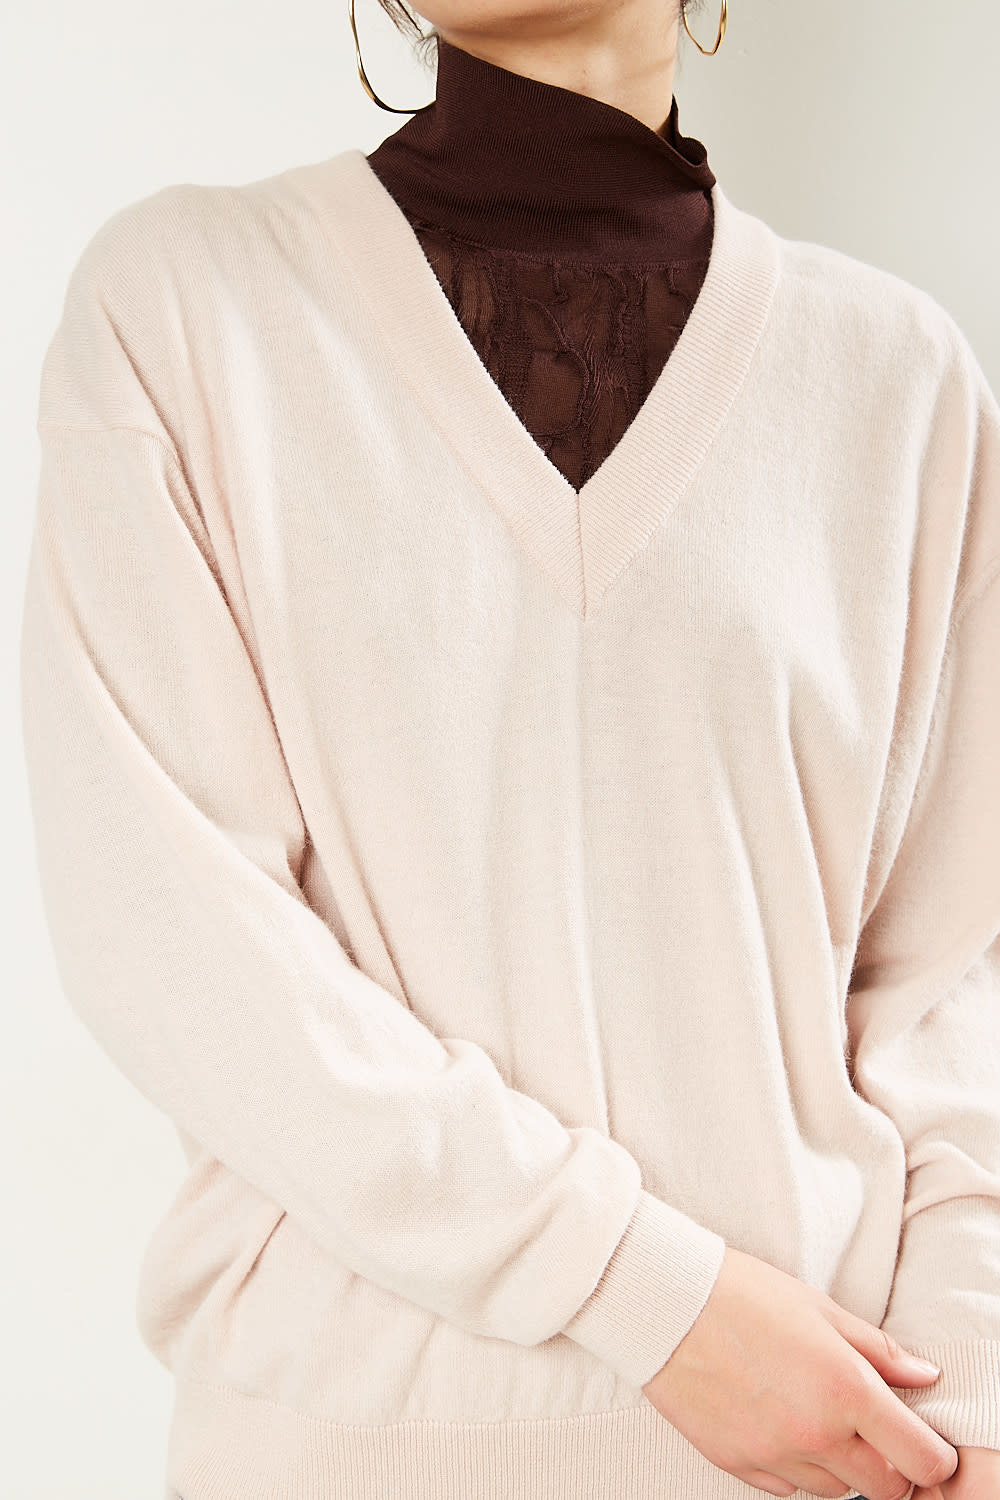 Christian Wijnants - Khage oversized v neck sweater